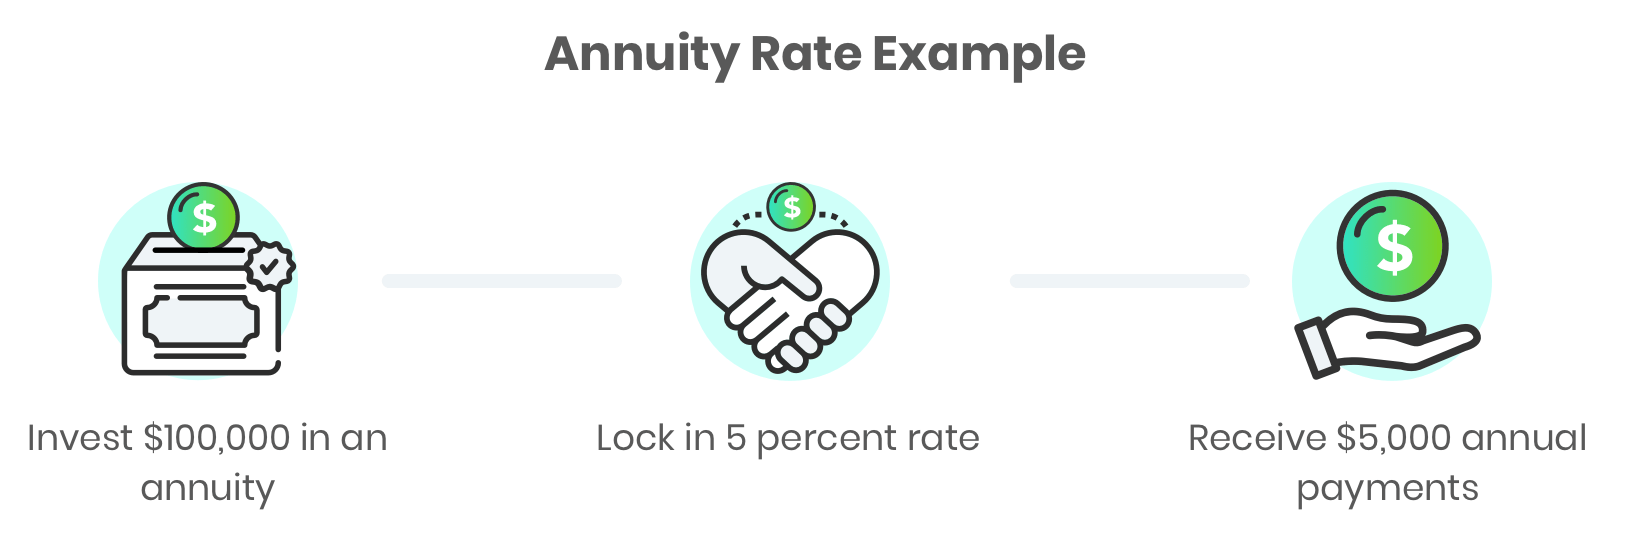 Annuity payments - what is the Description and the formula for calculating the annuity 16